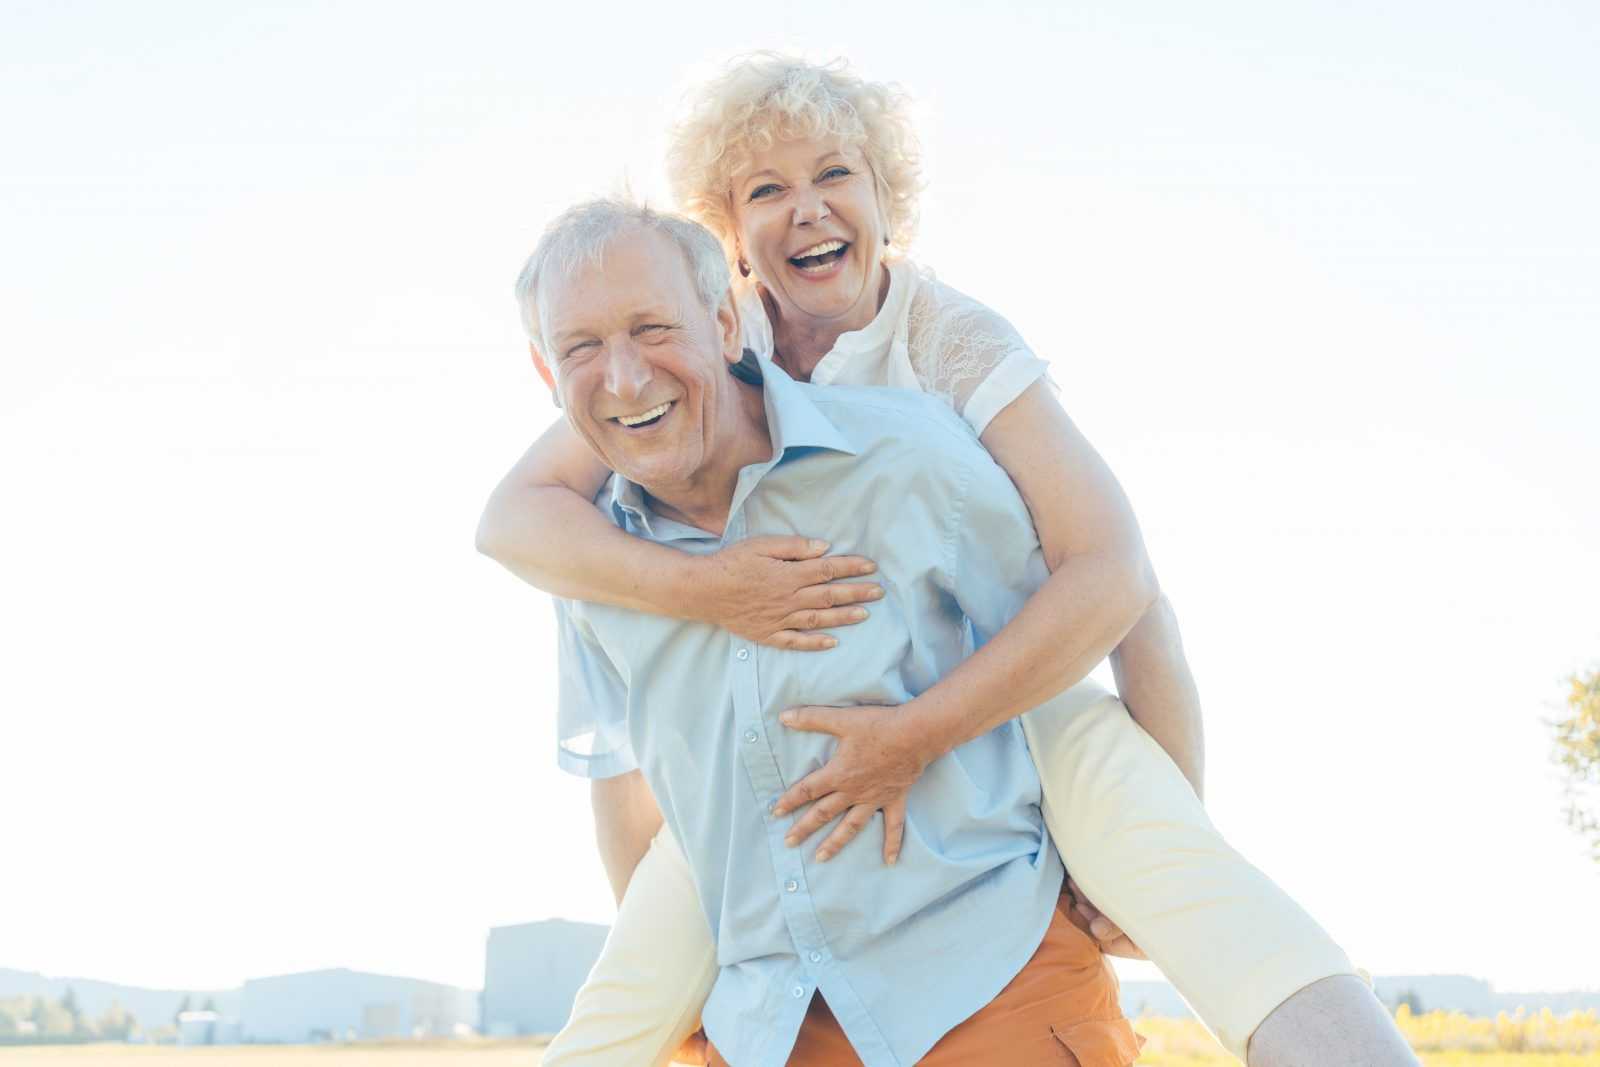 Happy senior man laughing while carrying his partner on his back:Low-angle view portrait of a happy senior man laughing, while carrying his partner on his back in a sunny day of summer in the countryside